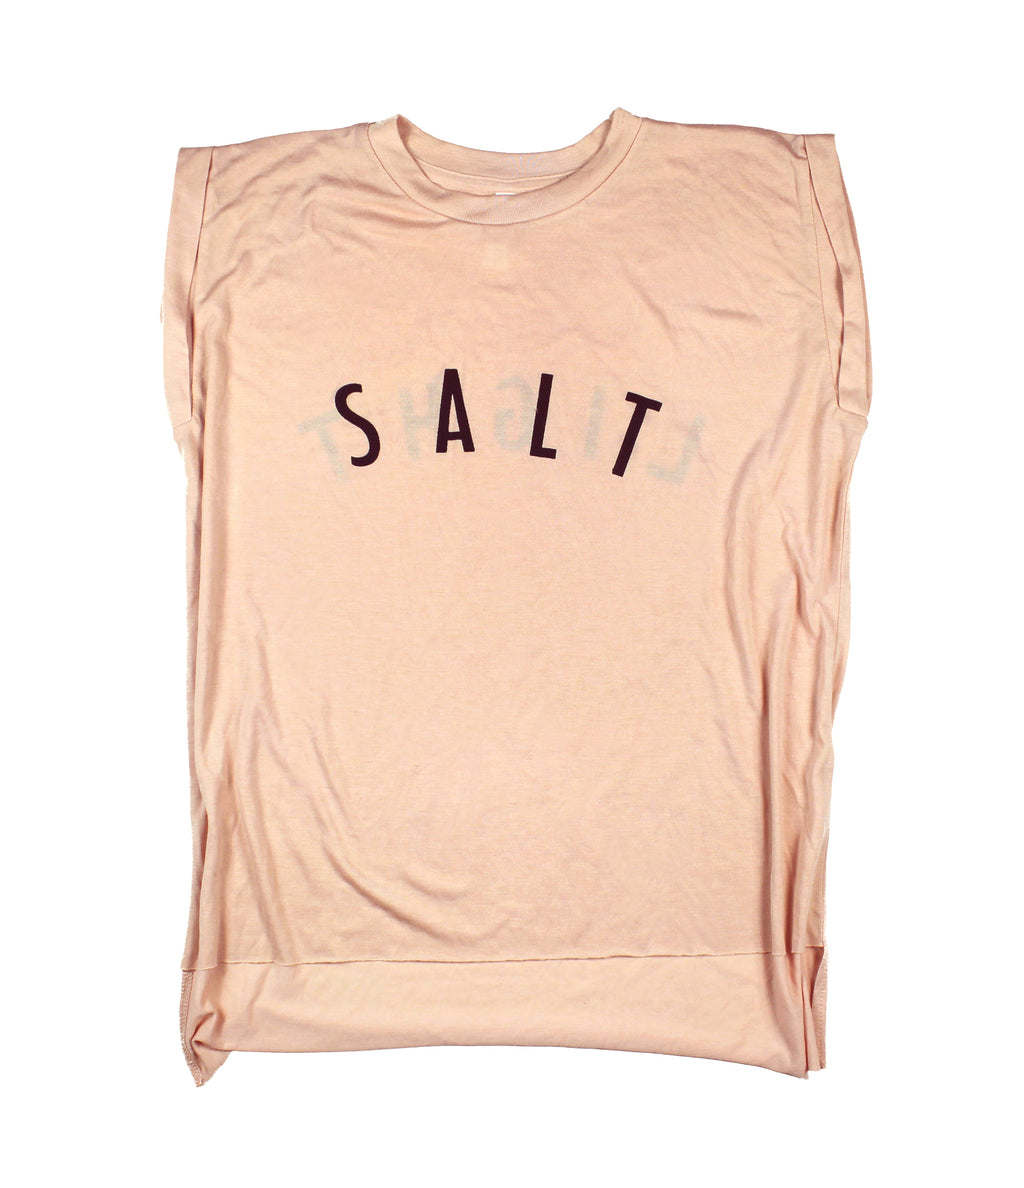 SALT + LIGHT PEACH WOMEN'S ROLLED CUFF MUSCLE T-SHIRT